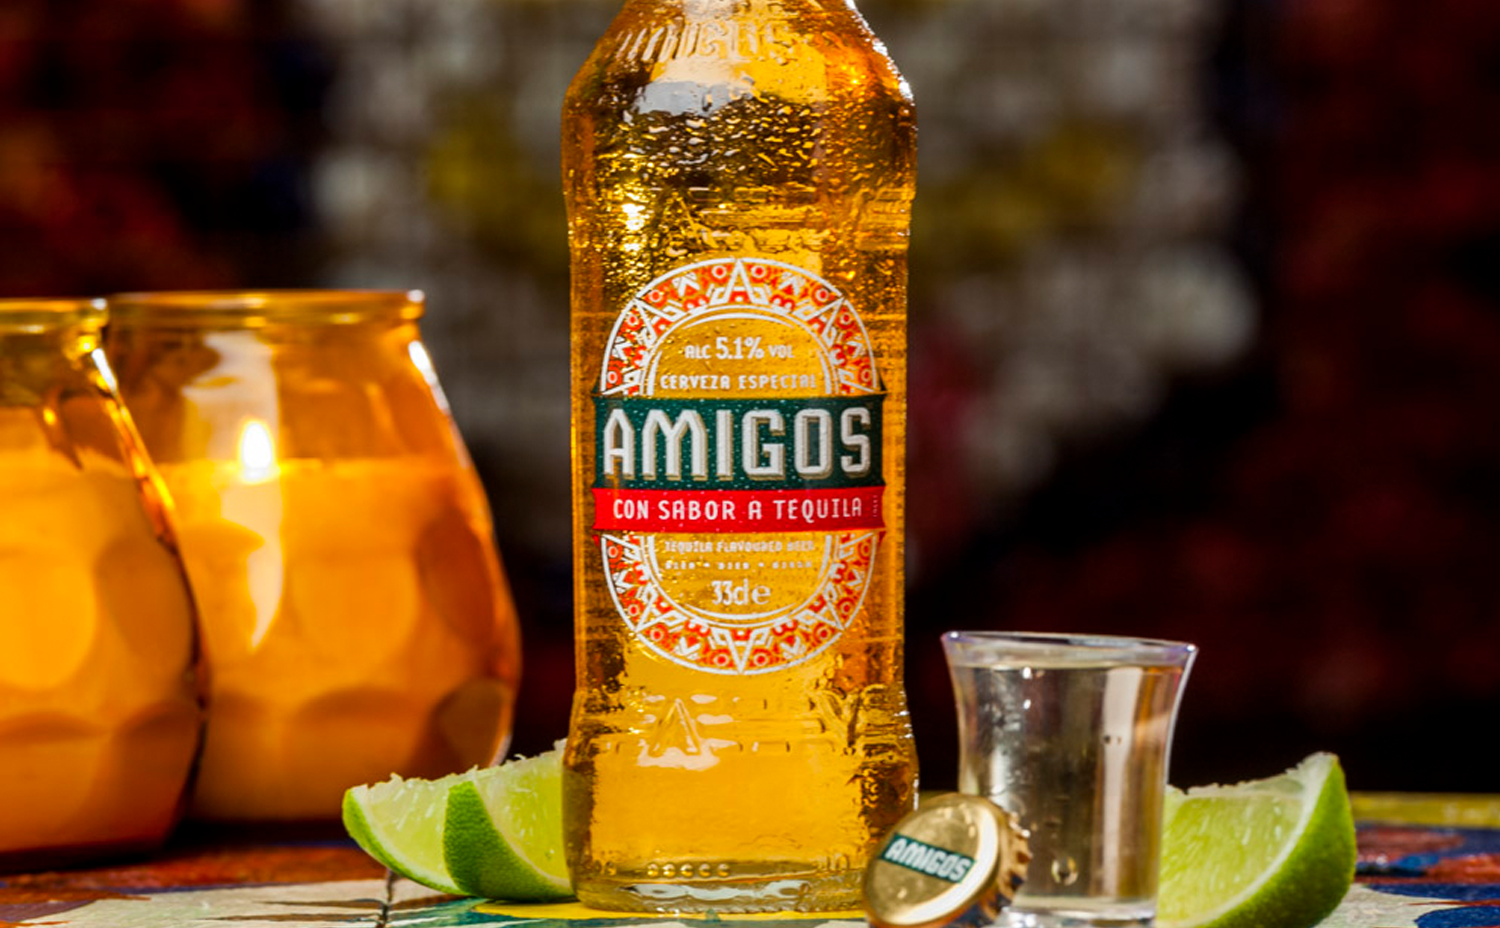 We've launched the new Amigos!